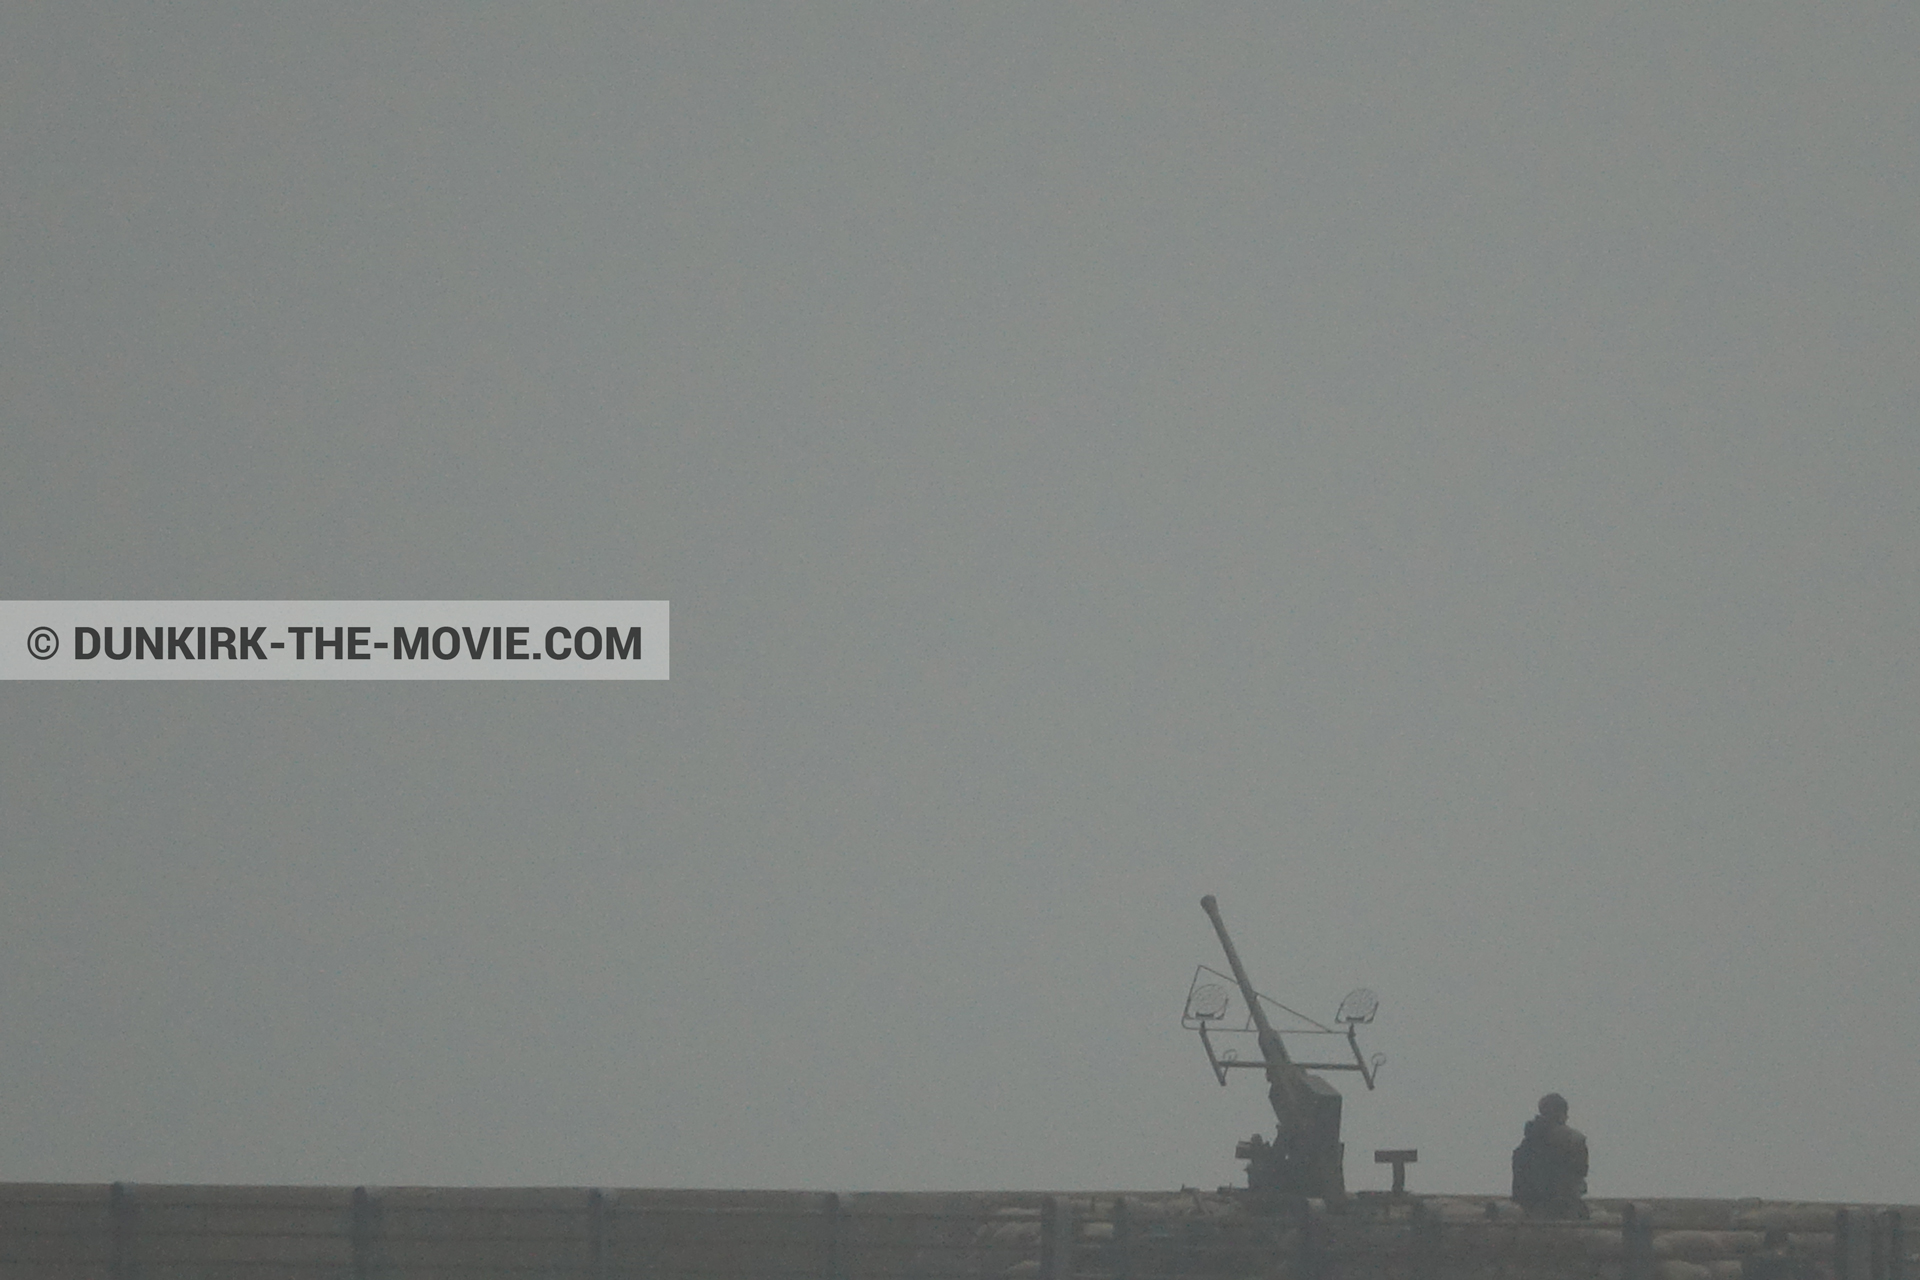 Picture with cannon, grey sky, EST pier,  from behind the scene of the Dunkirk movie by Nolan